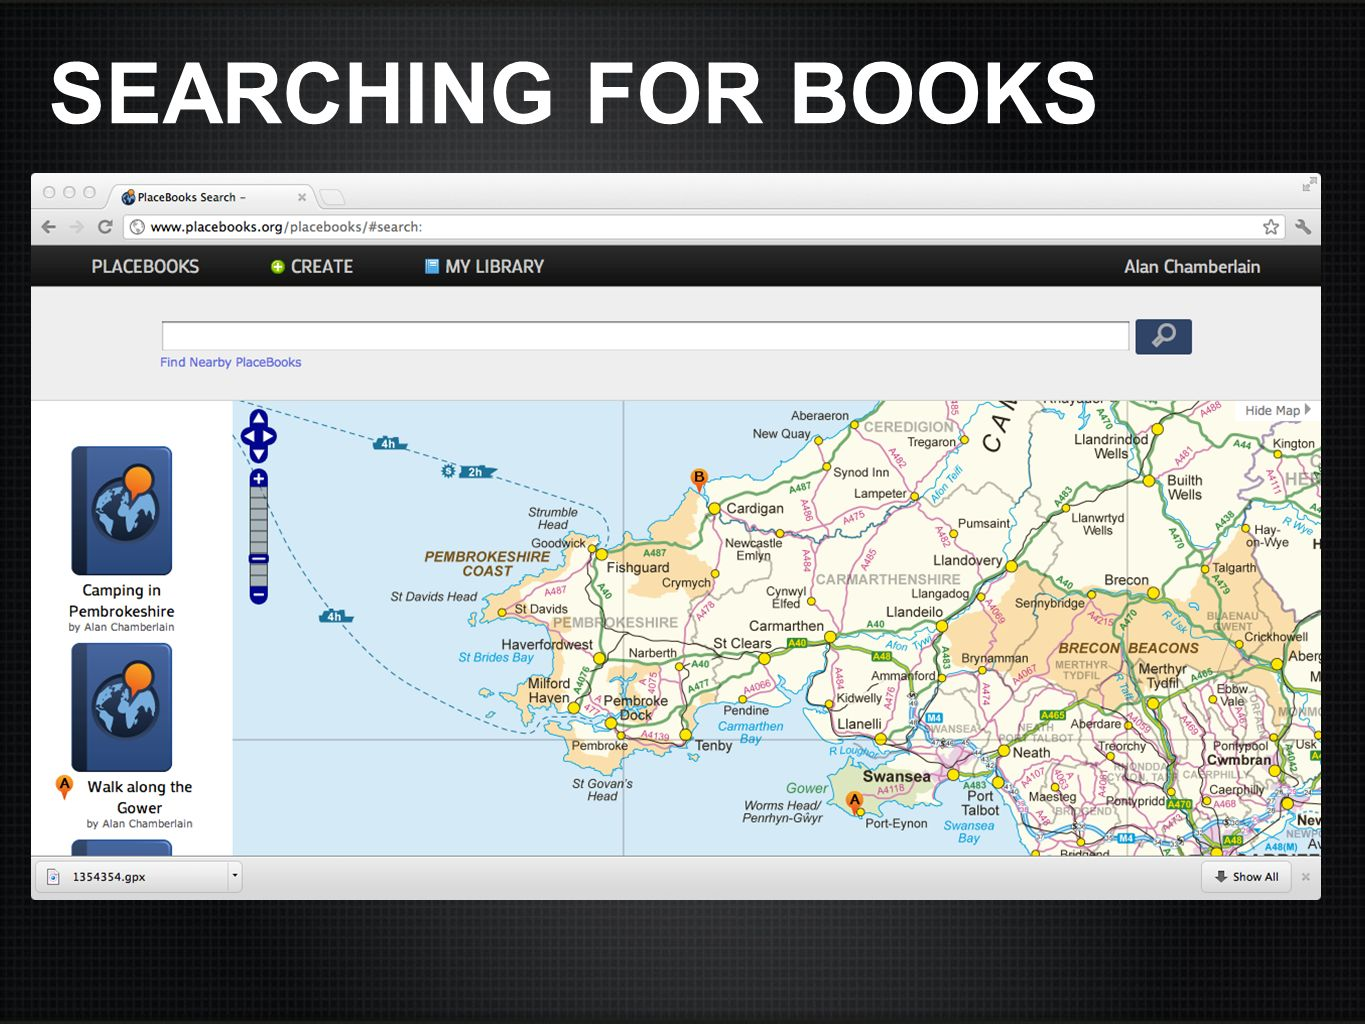 SEARCHING FOR BOOKS